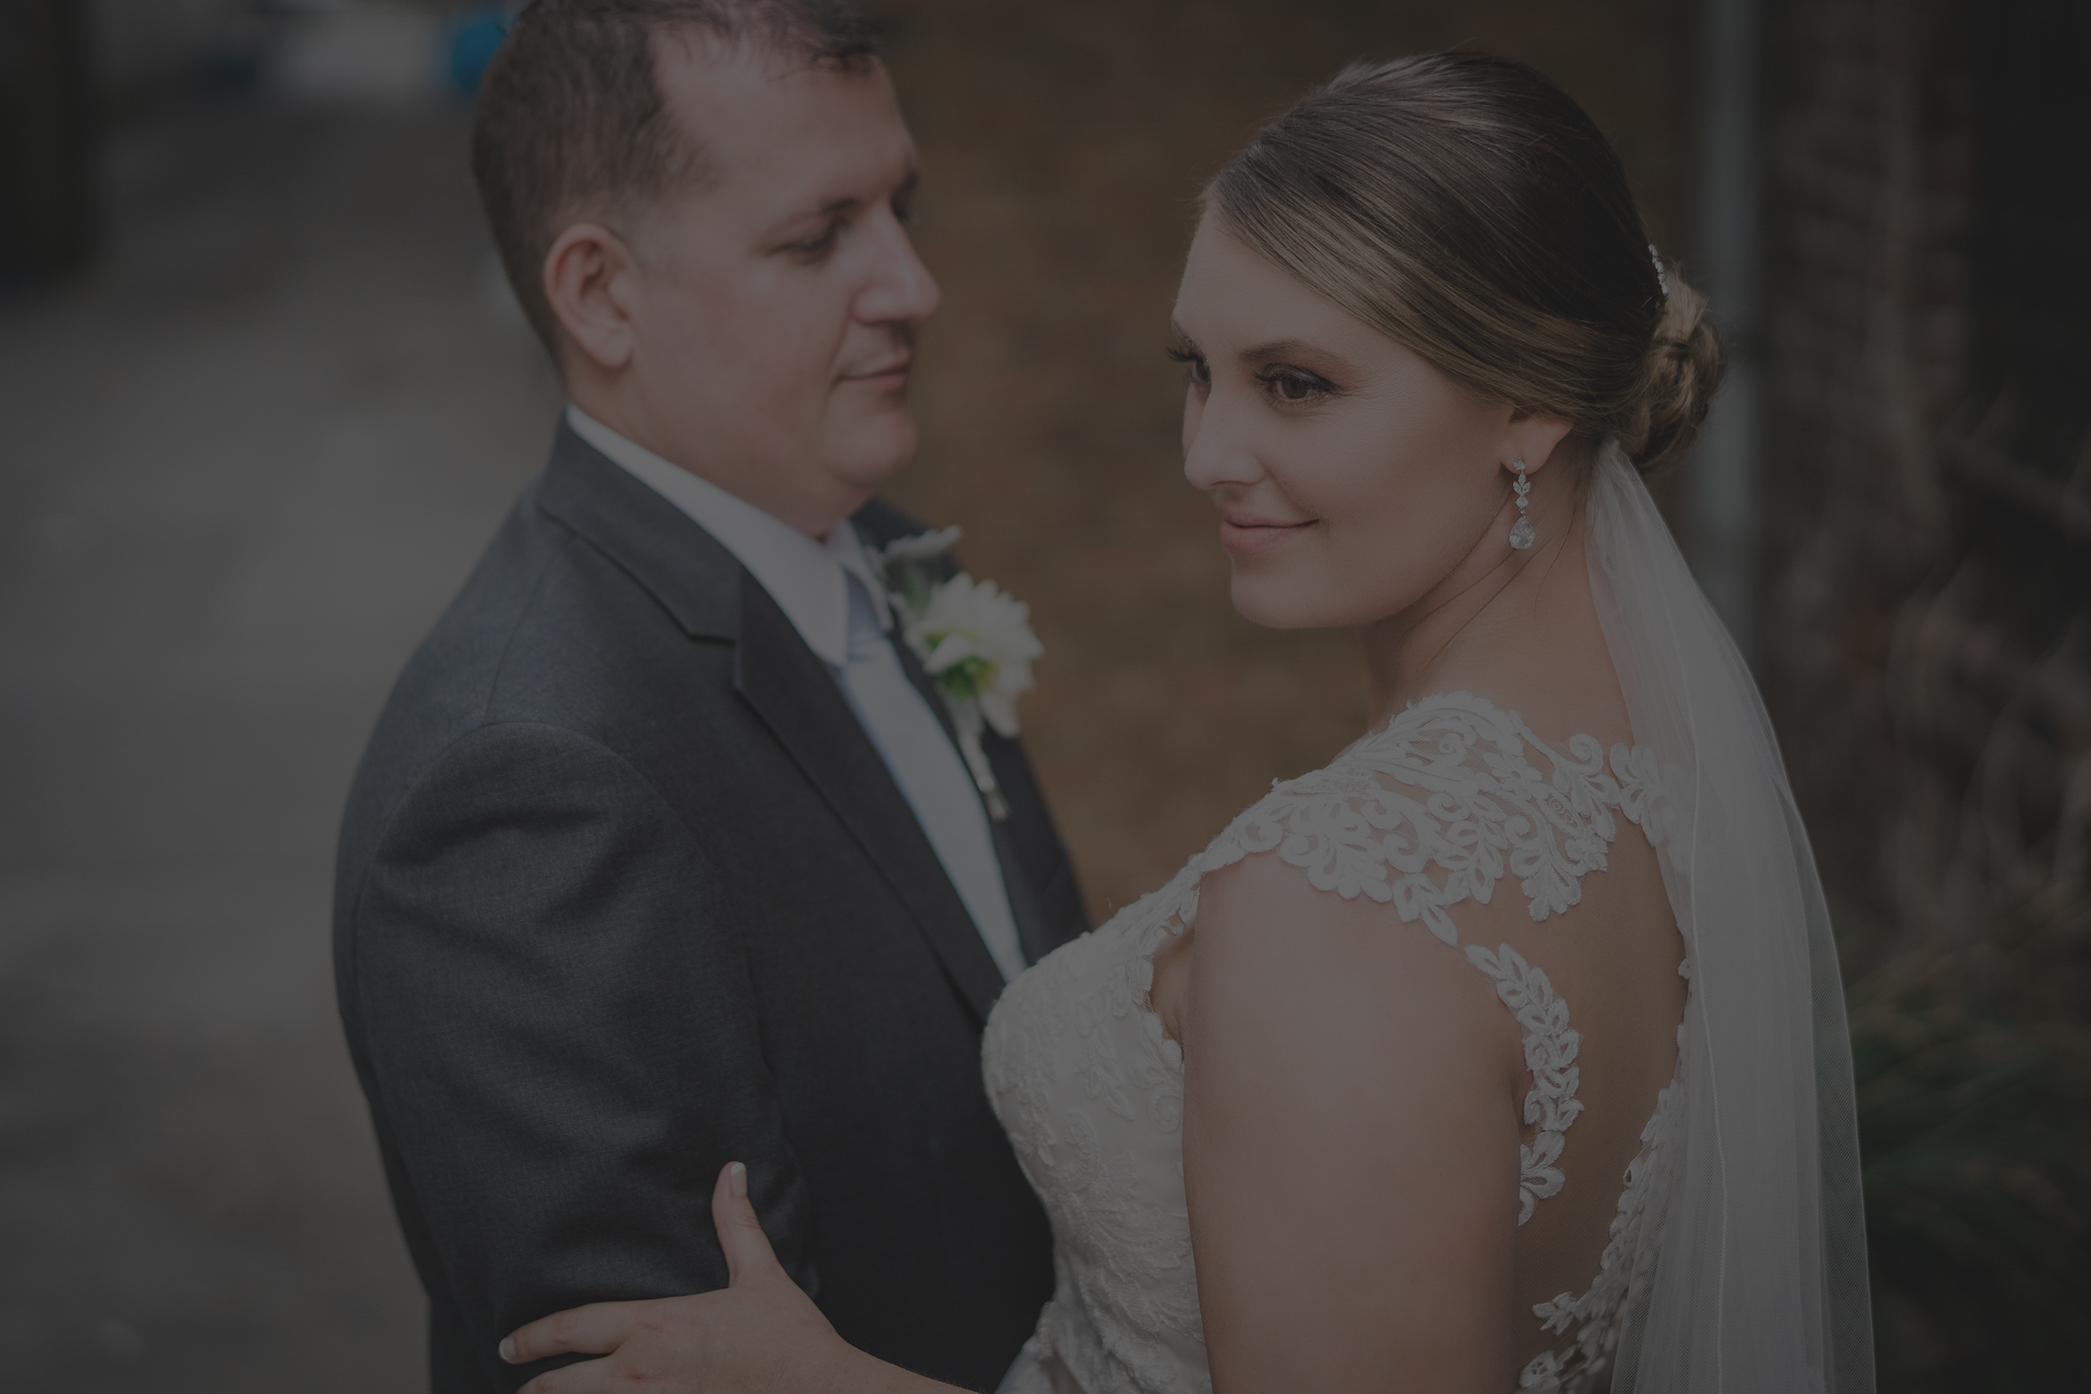 Real Wedding Album - Take a look at a one of our full wedding Day albums